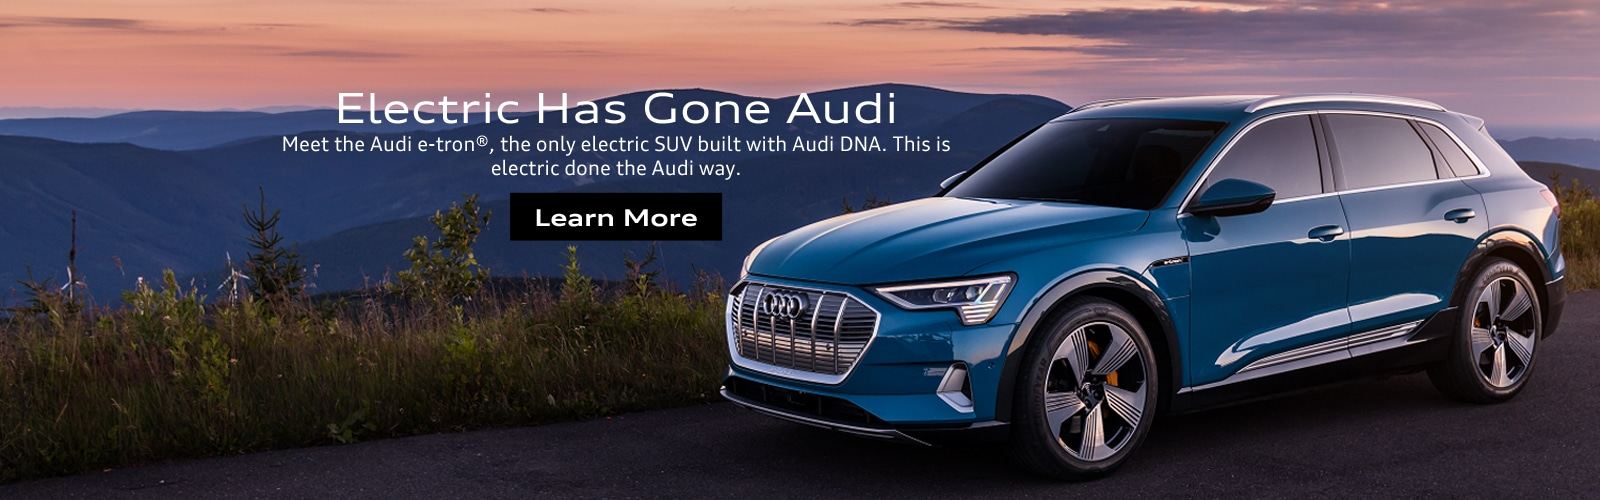 Checkered Flag Audi | Audi Norfolk Virginia - Used Car Virginia